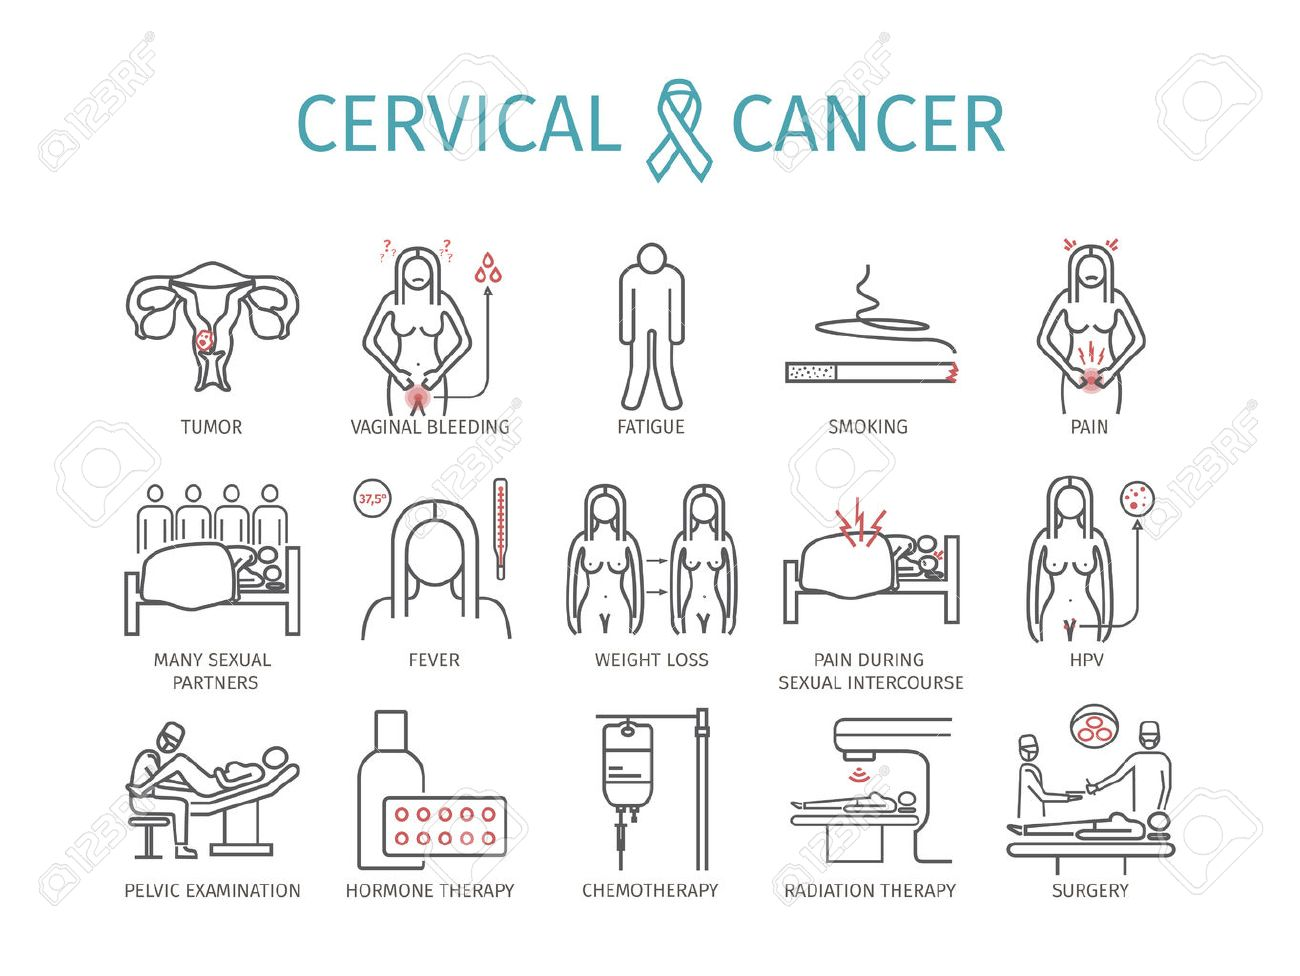 cancer cervical signos y sintomas